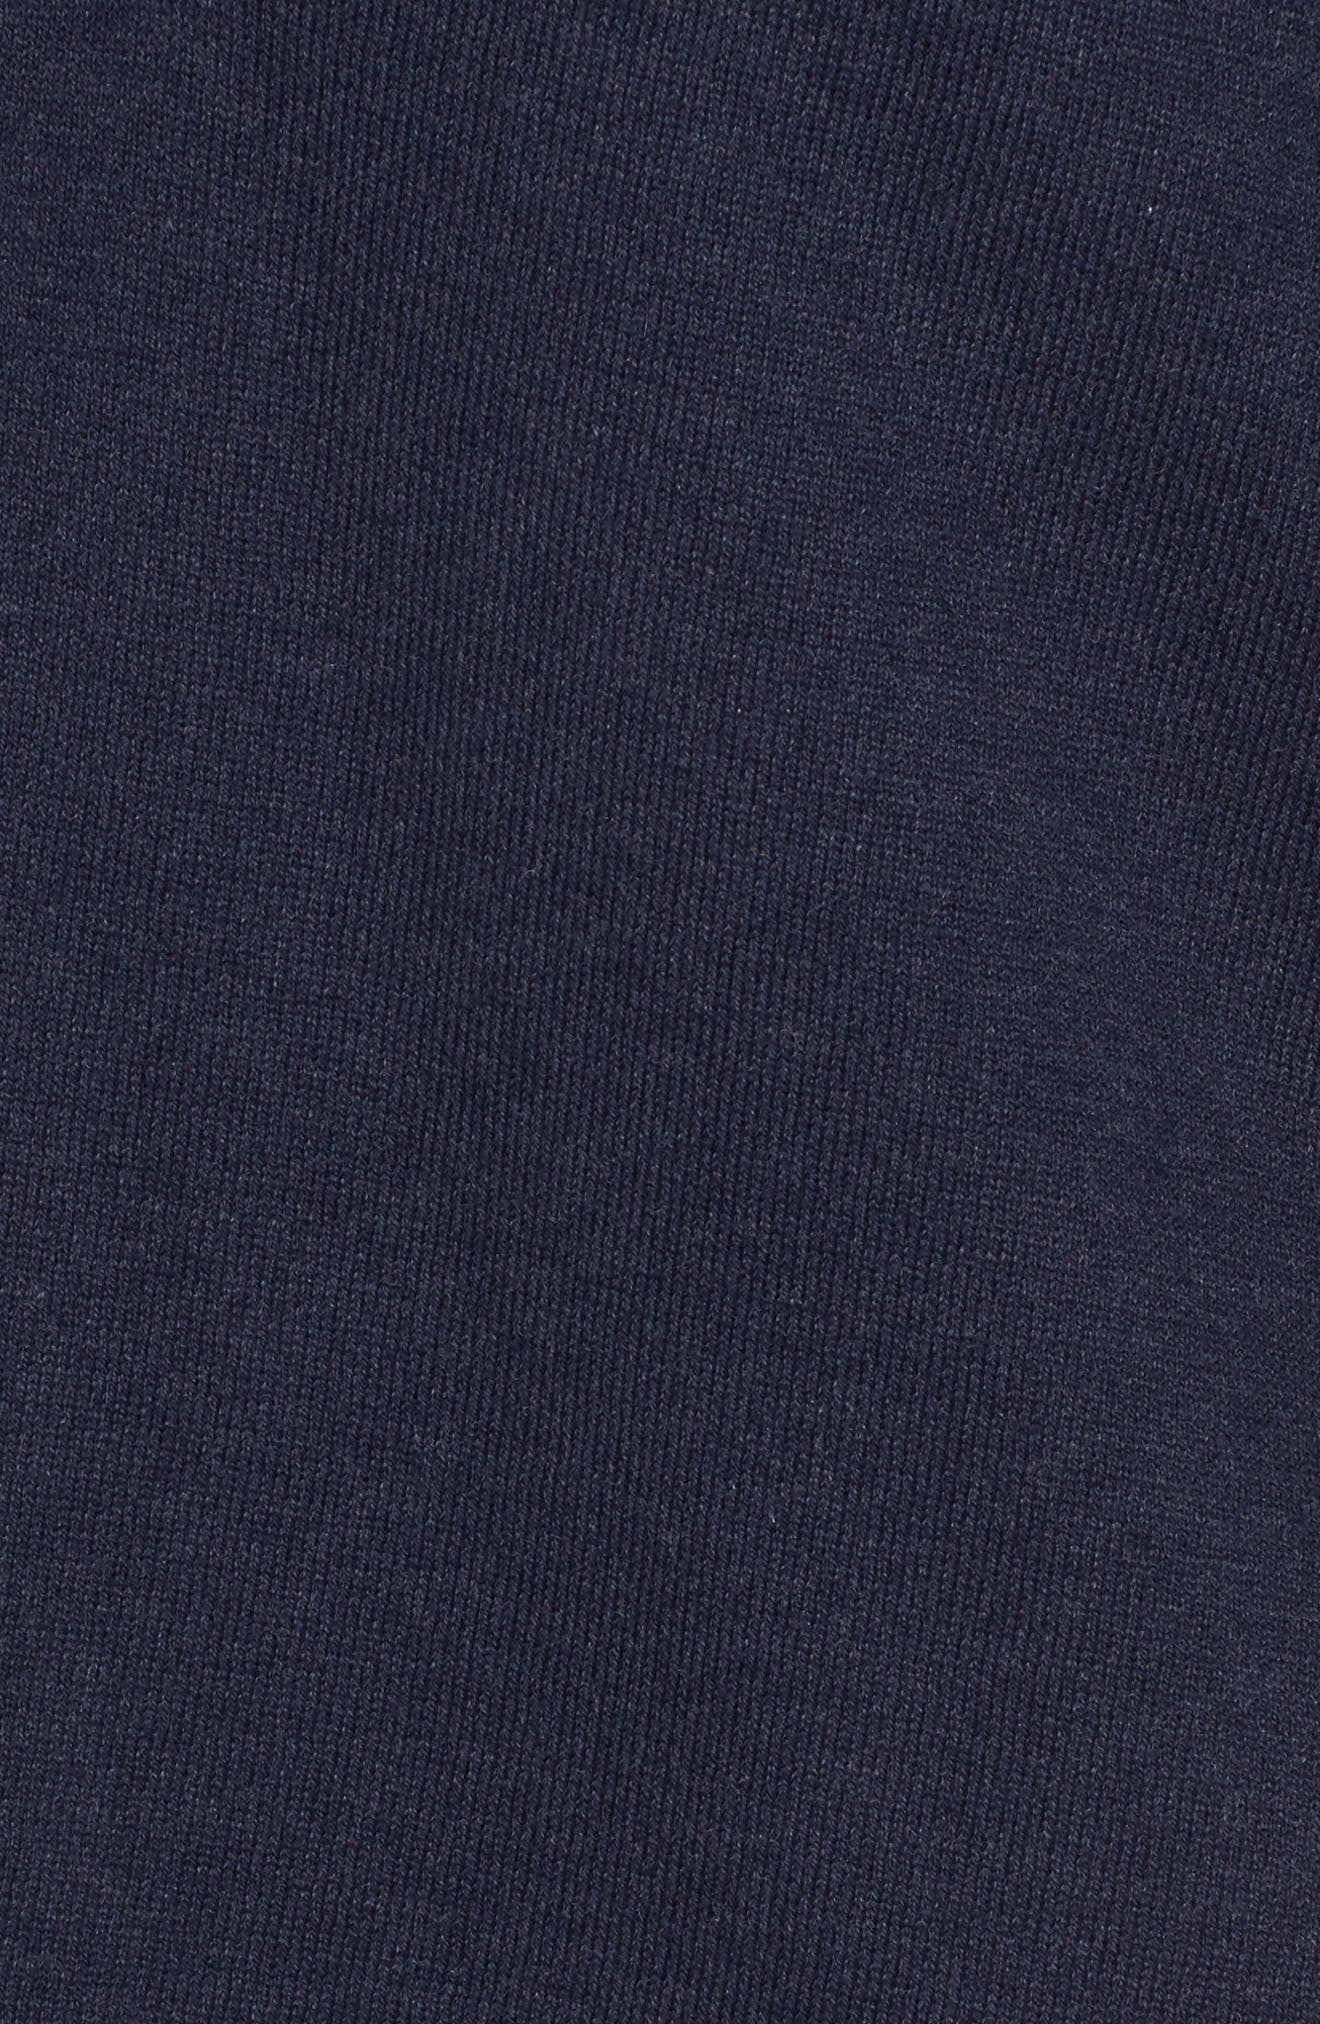 Hooded Organic Cotton Box Sweater,                             Alternate thumbnail 5, color,                             Midnight